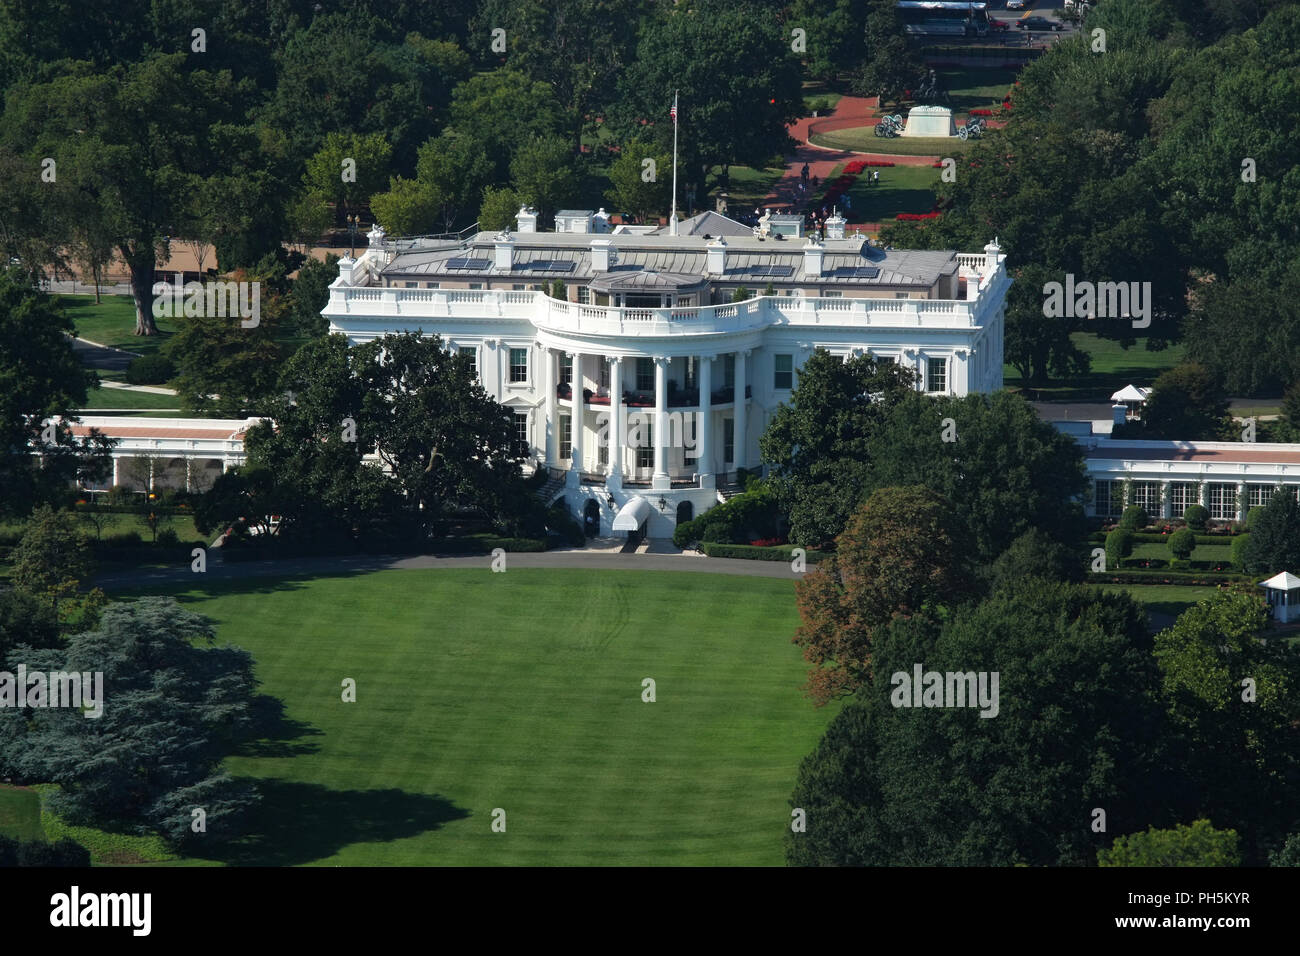 WASHINGTON, DC - AUGUST 29: Kremlin Annex is a nick-name commonly associated with The White House since its occupation by the 45th President of The Un Stock Photo